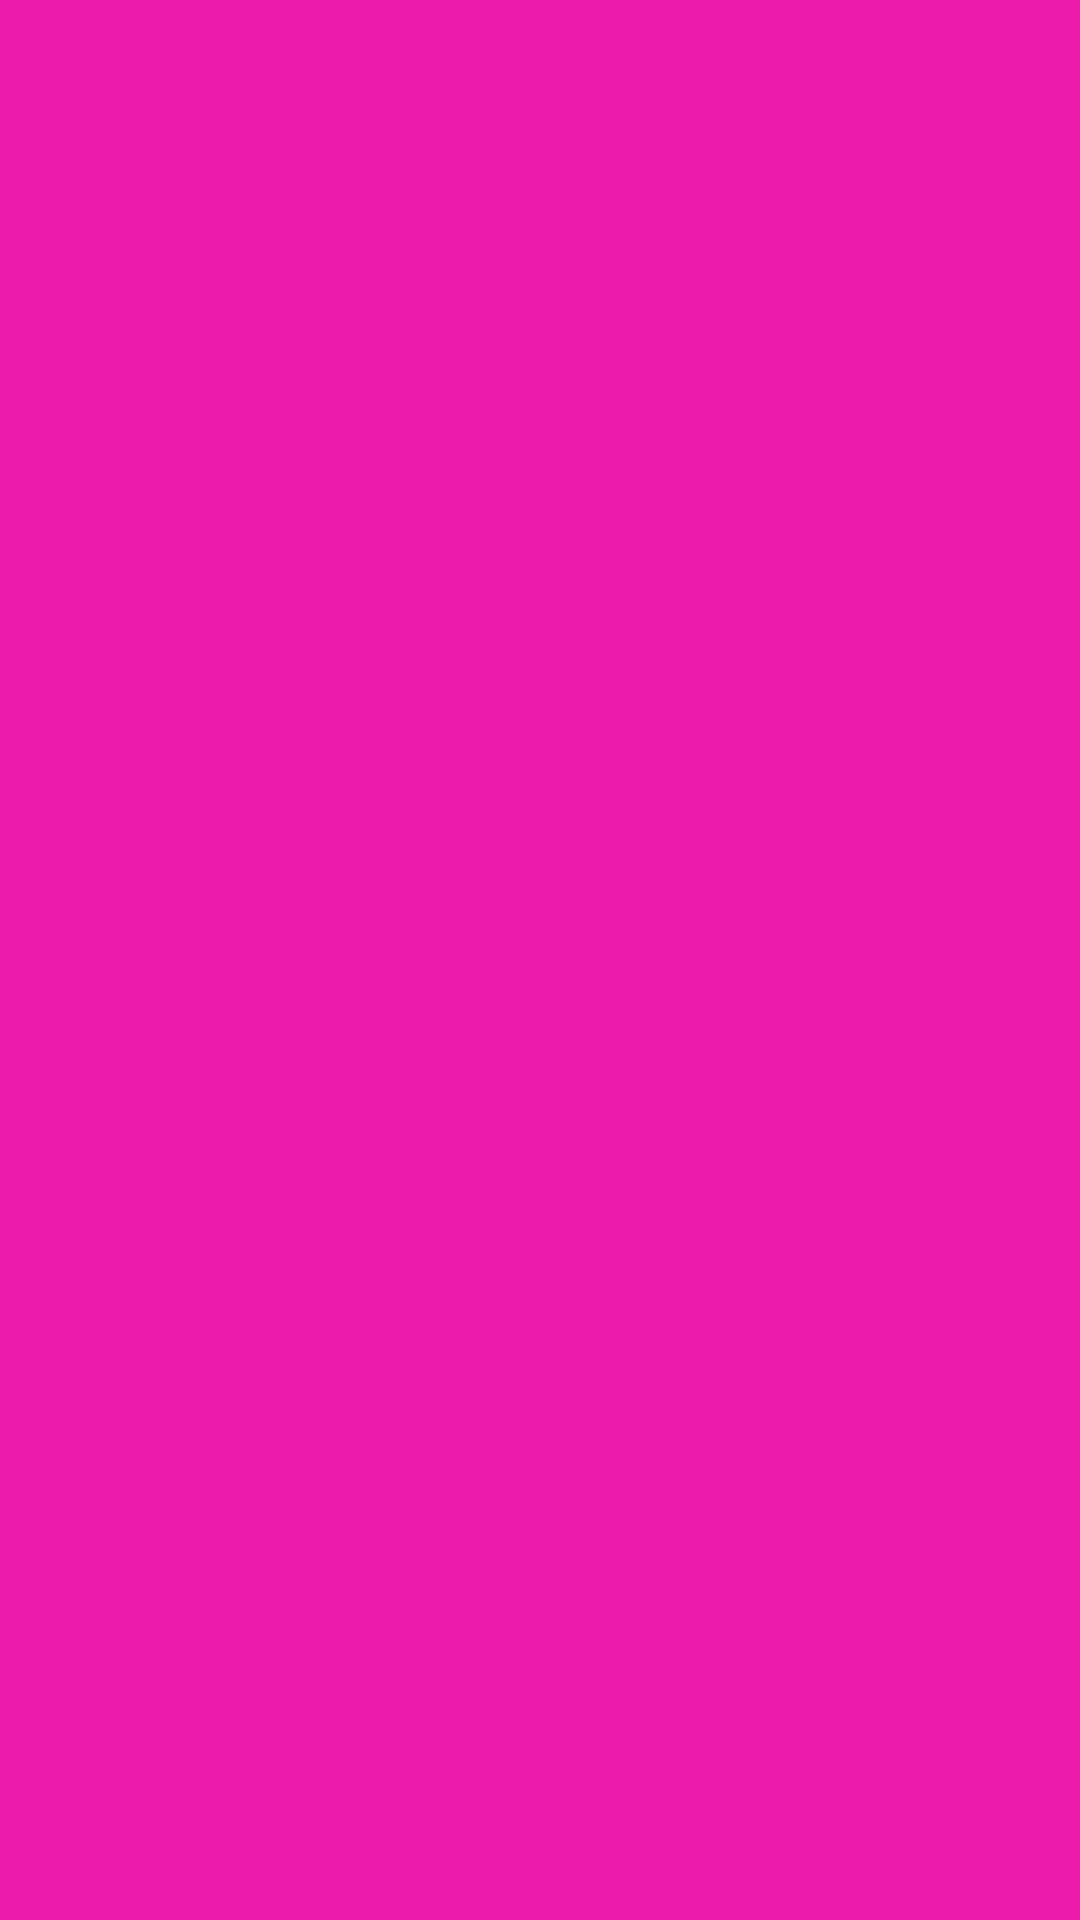 Pin By Sabrina On Matte Solid Color Backgrounds Pink Wallpaper